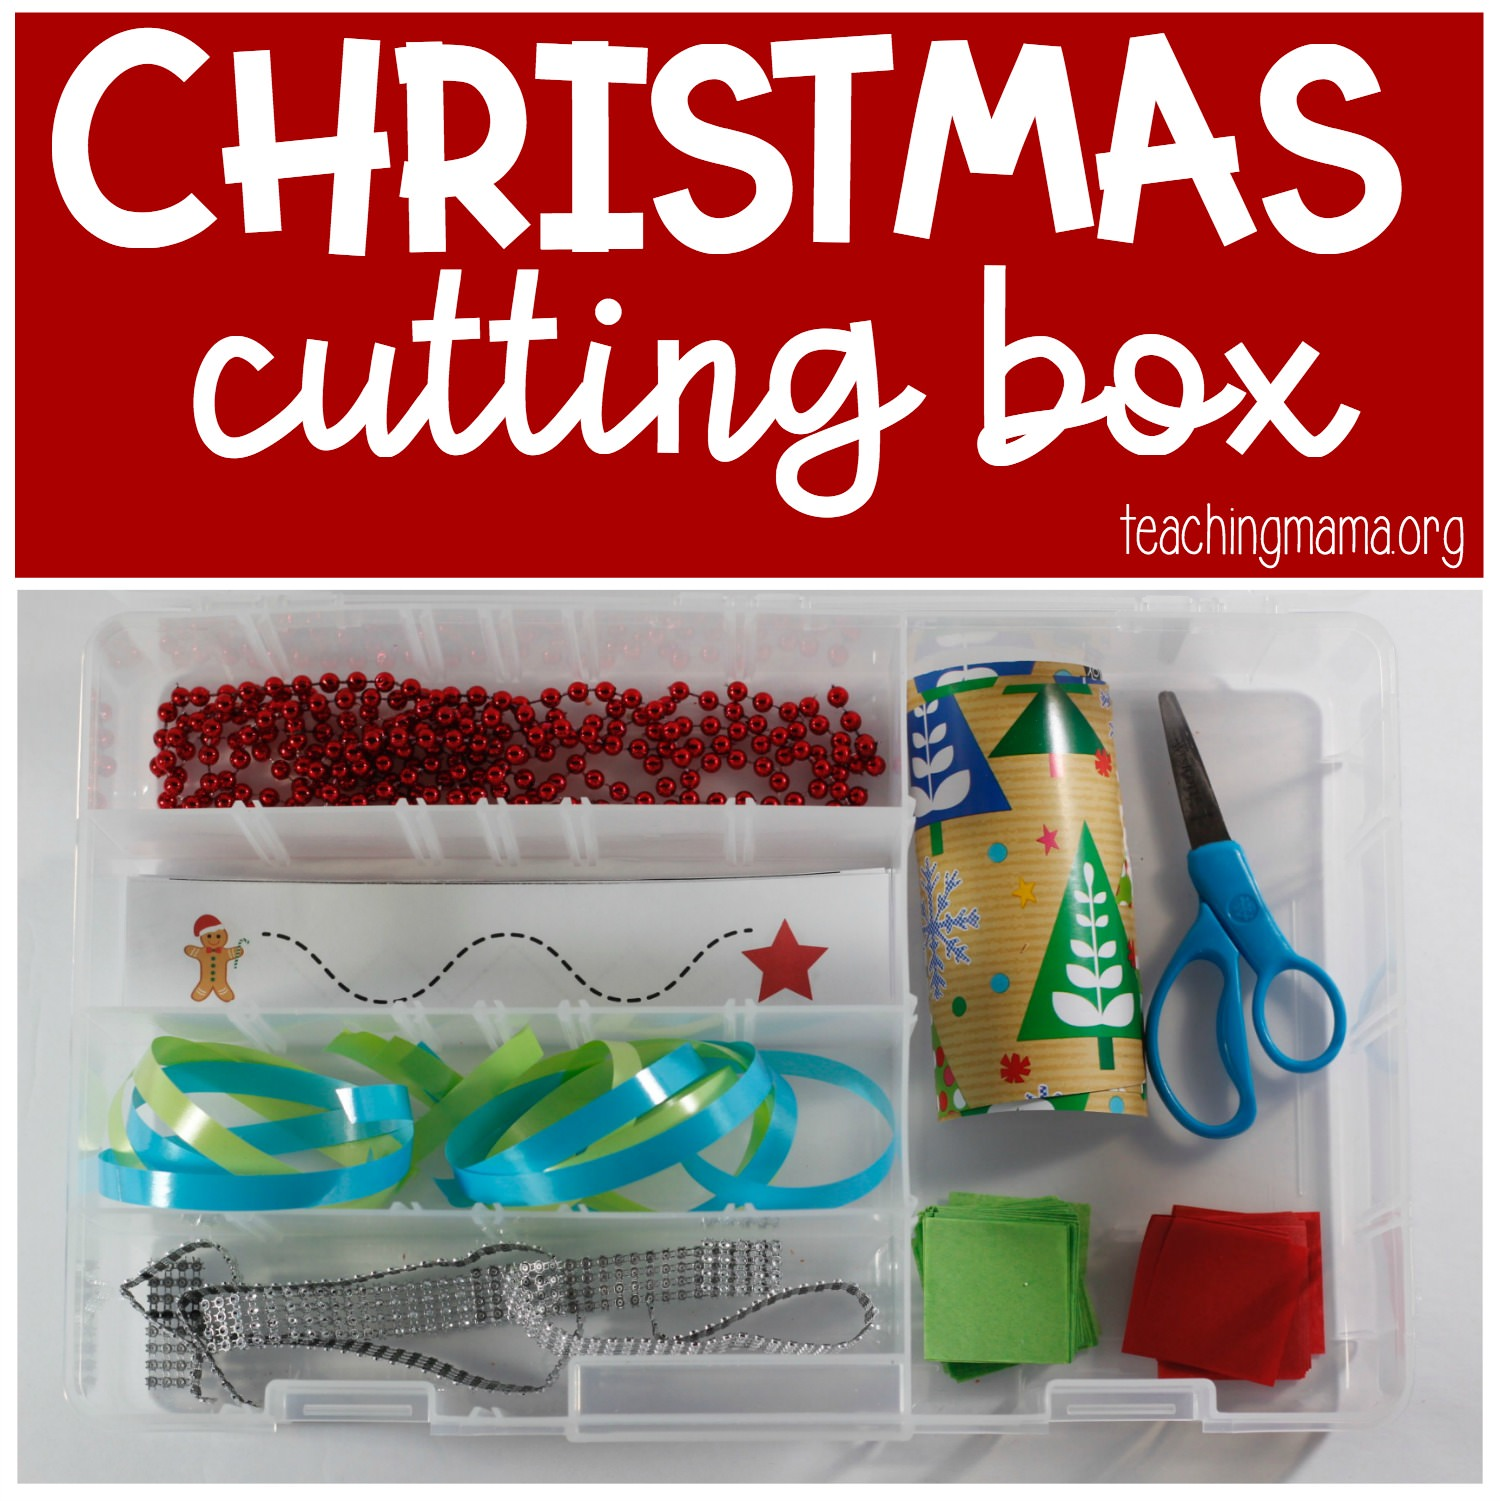 Christmas cutting box